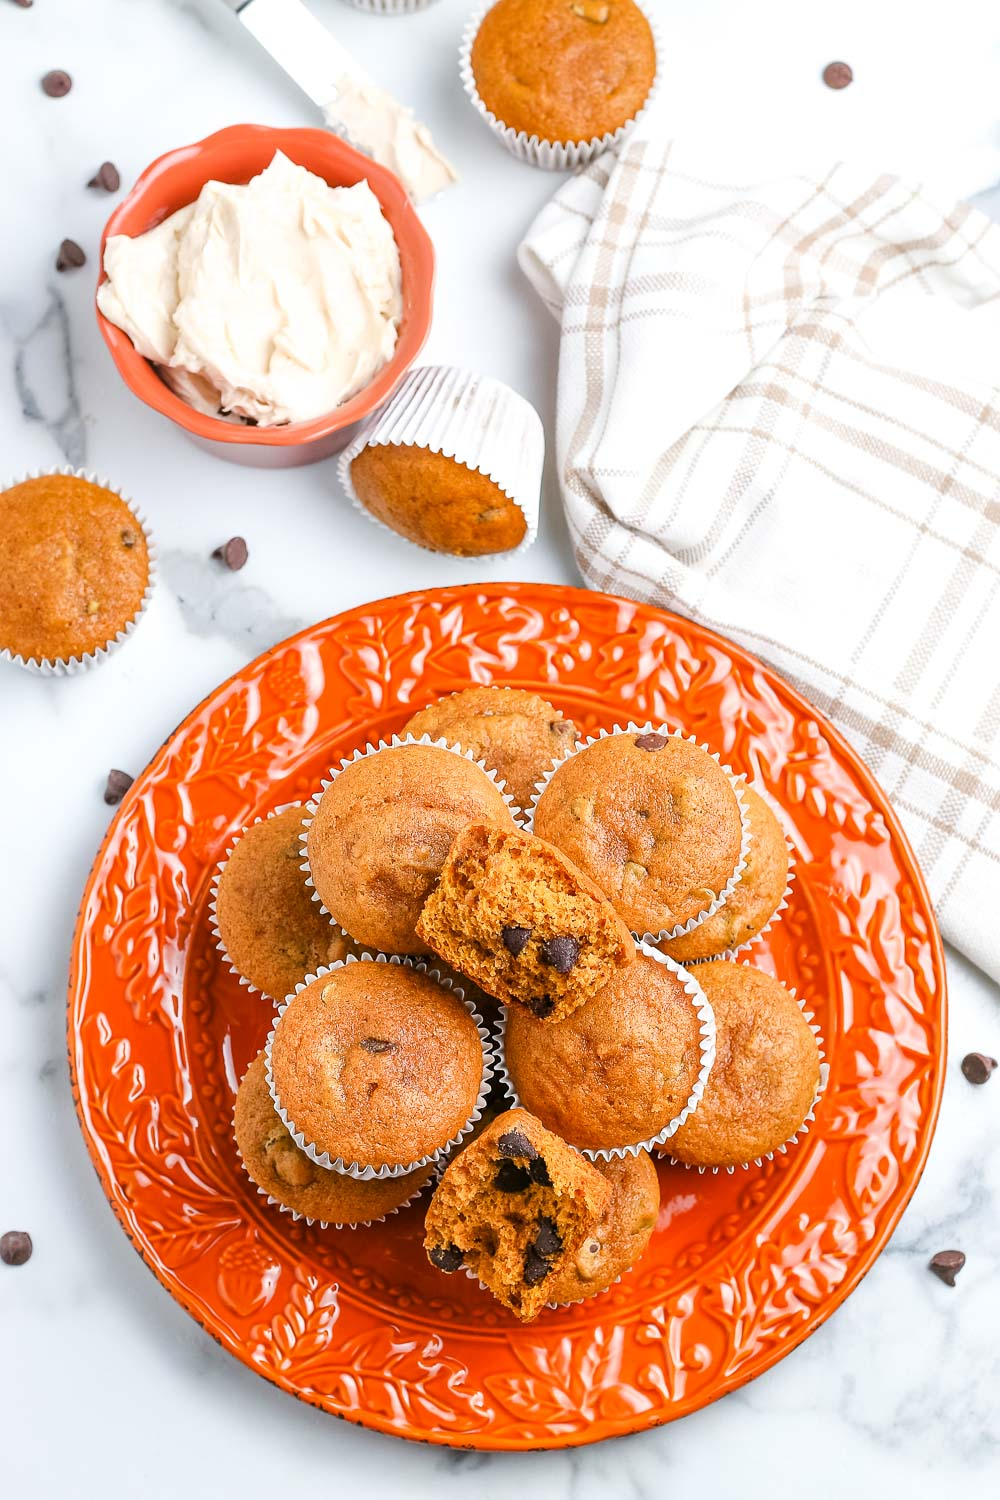 An overhead picture of a plate of the finished Pumpkin Chocolate Chip Muffins.